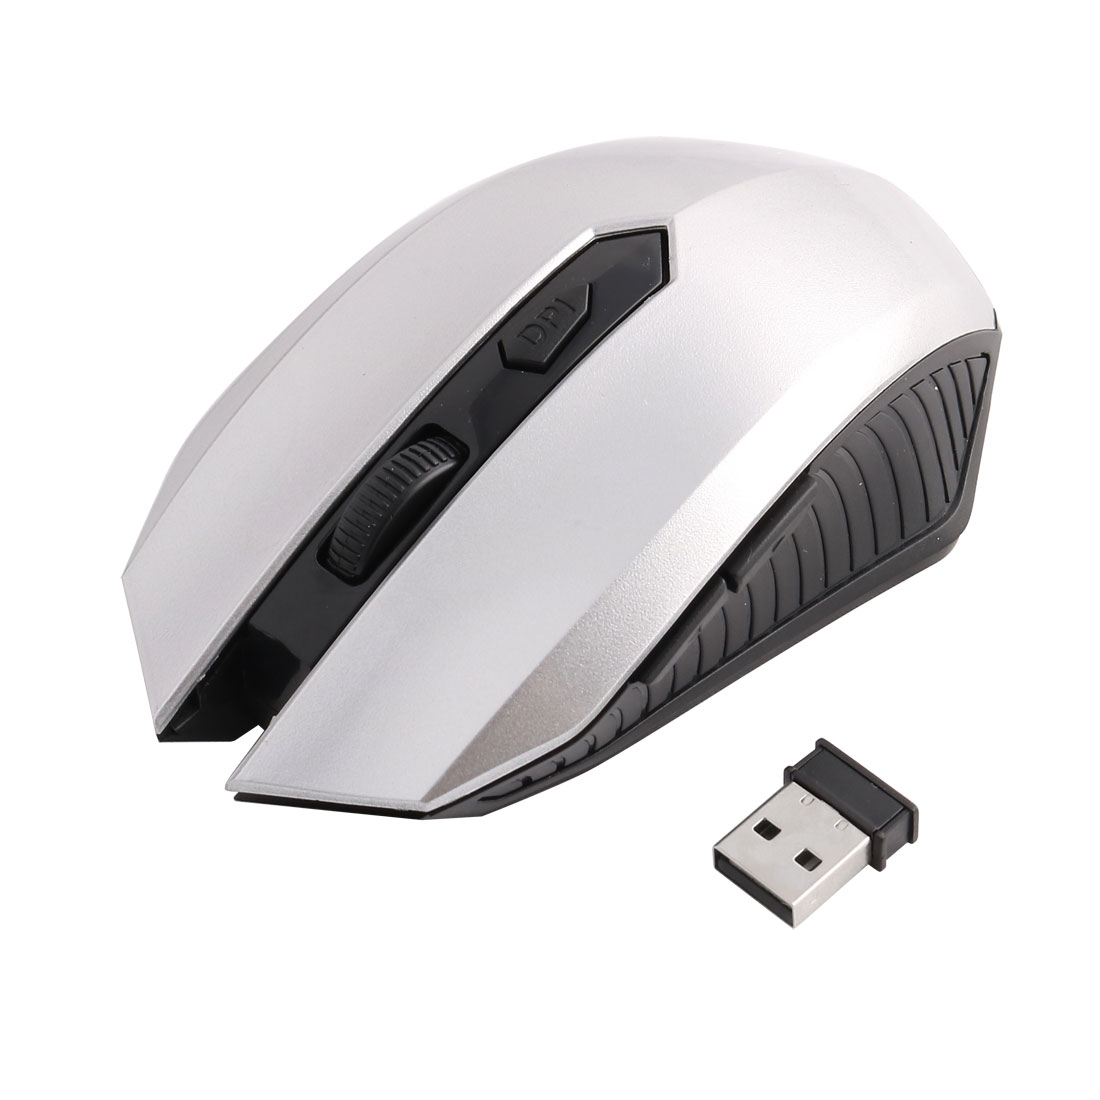 Unique Bargains Computer Playing Games 2.4GHZ USB Receiver Wireless Optical Mouse Mice